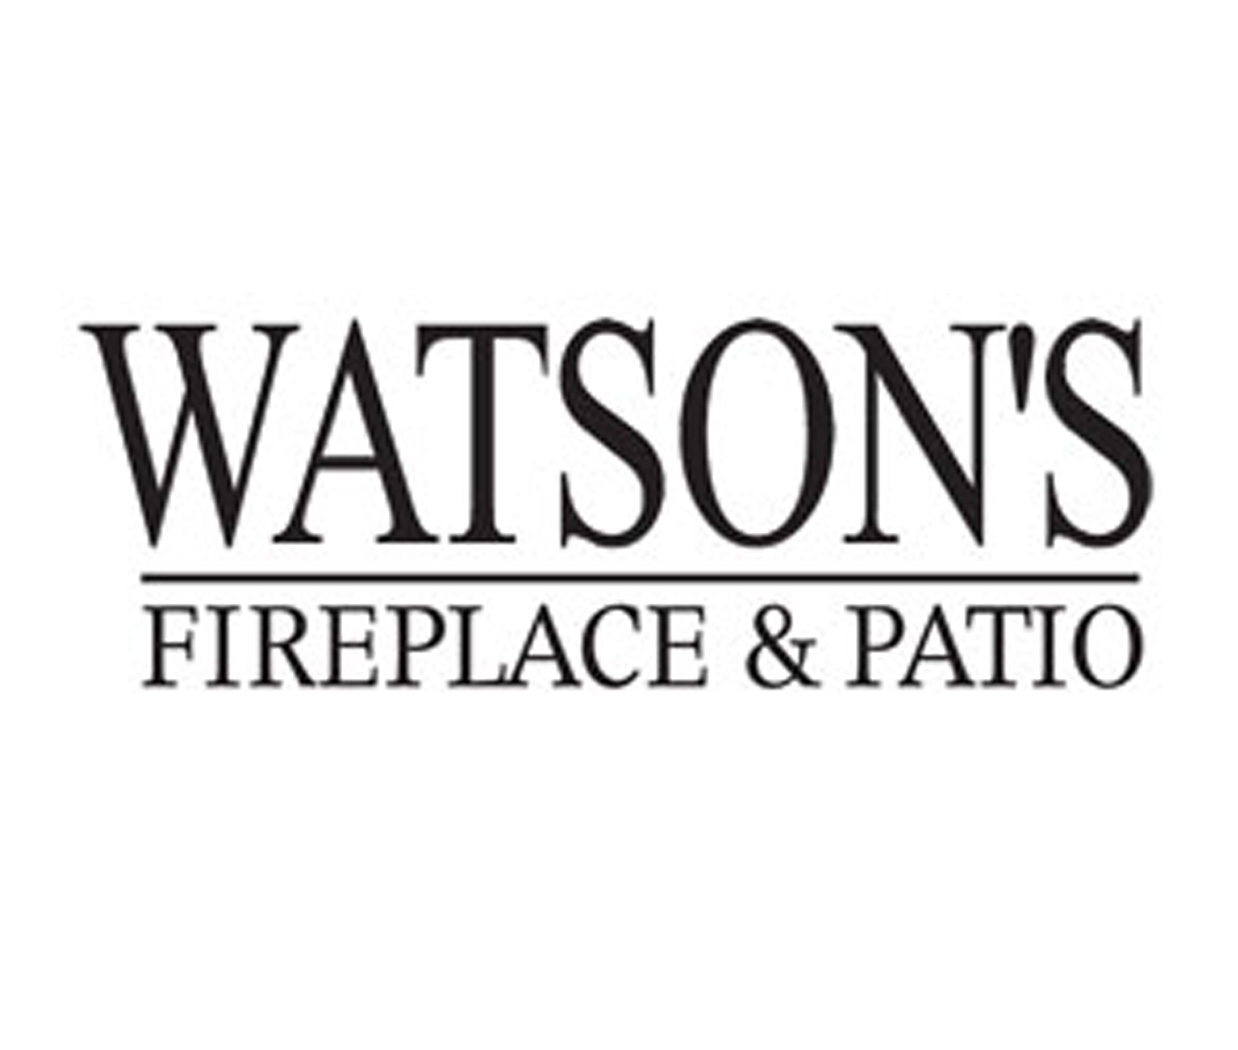 Watsons Fireplace and Patio